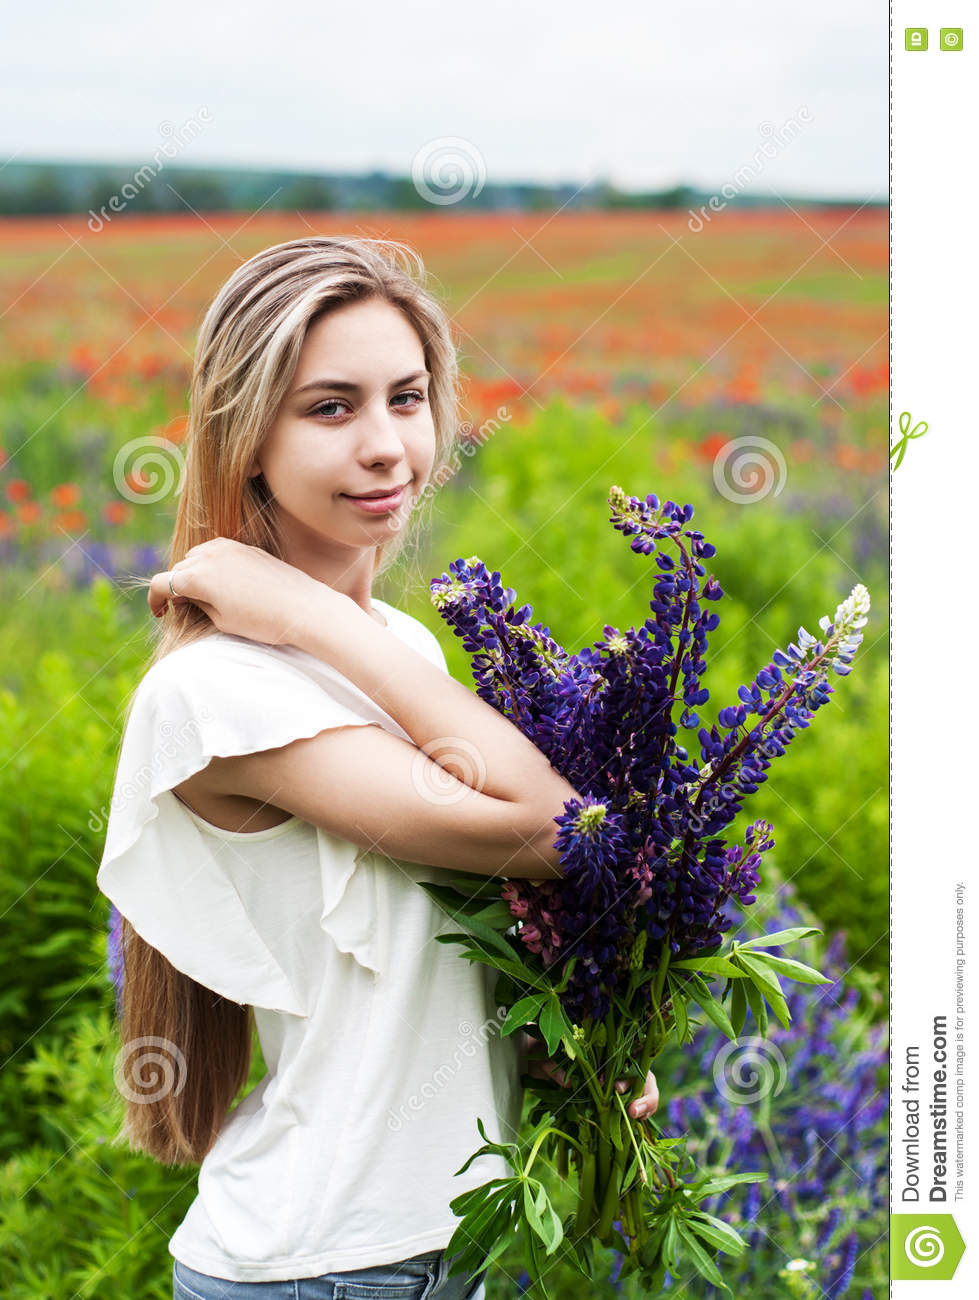 Girl with bouquet of lupine flowers